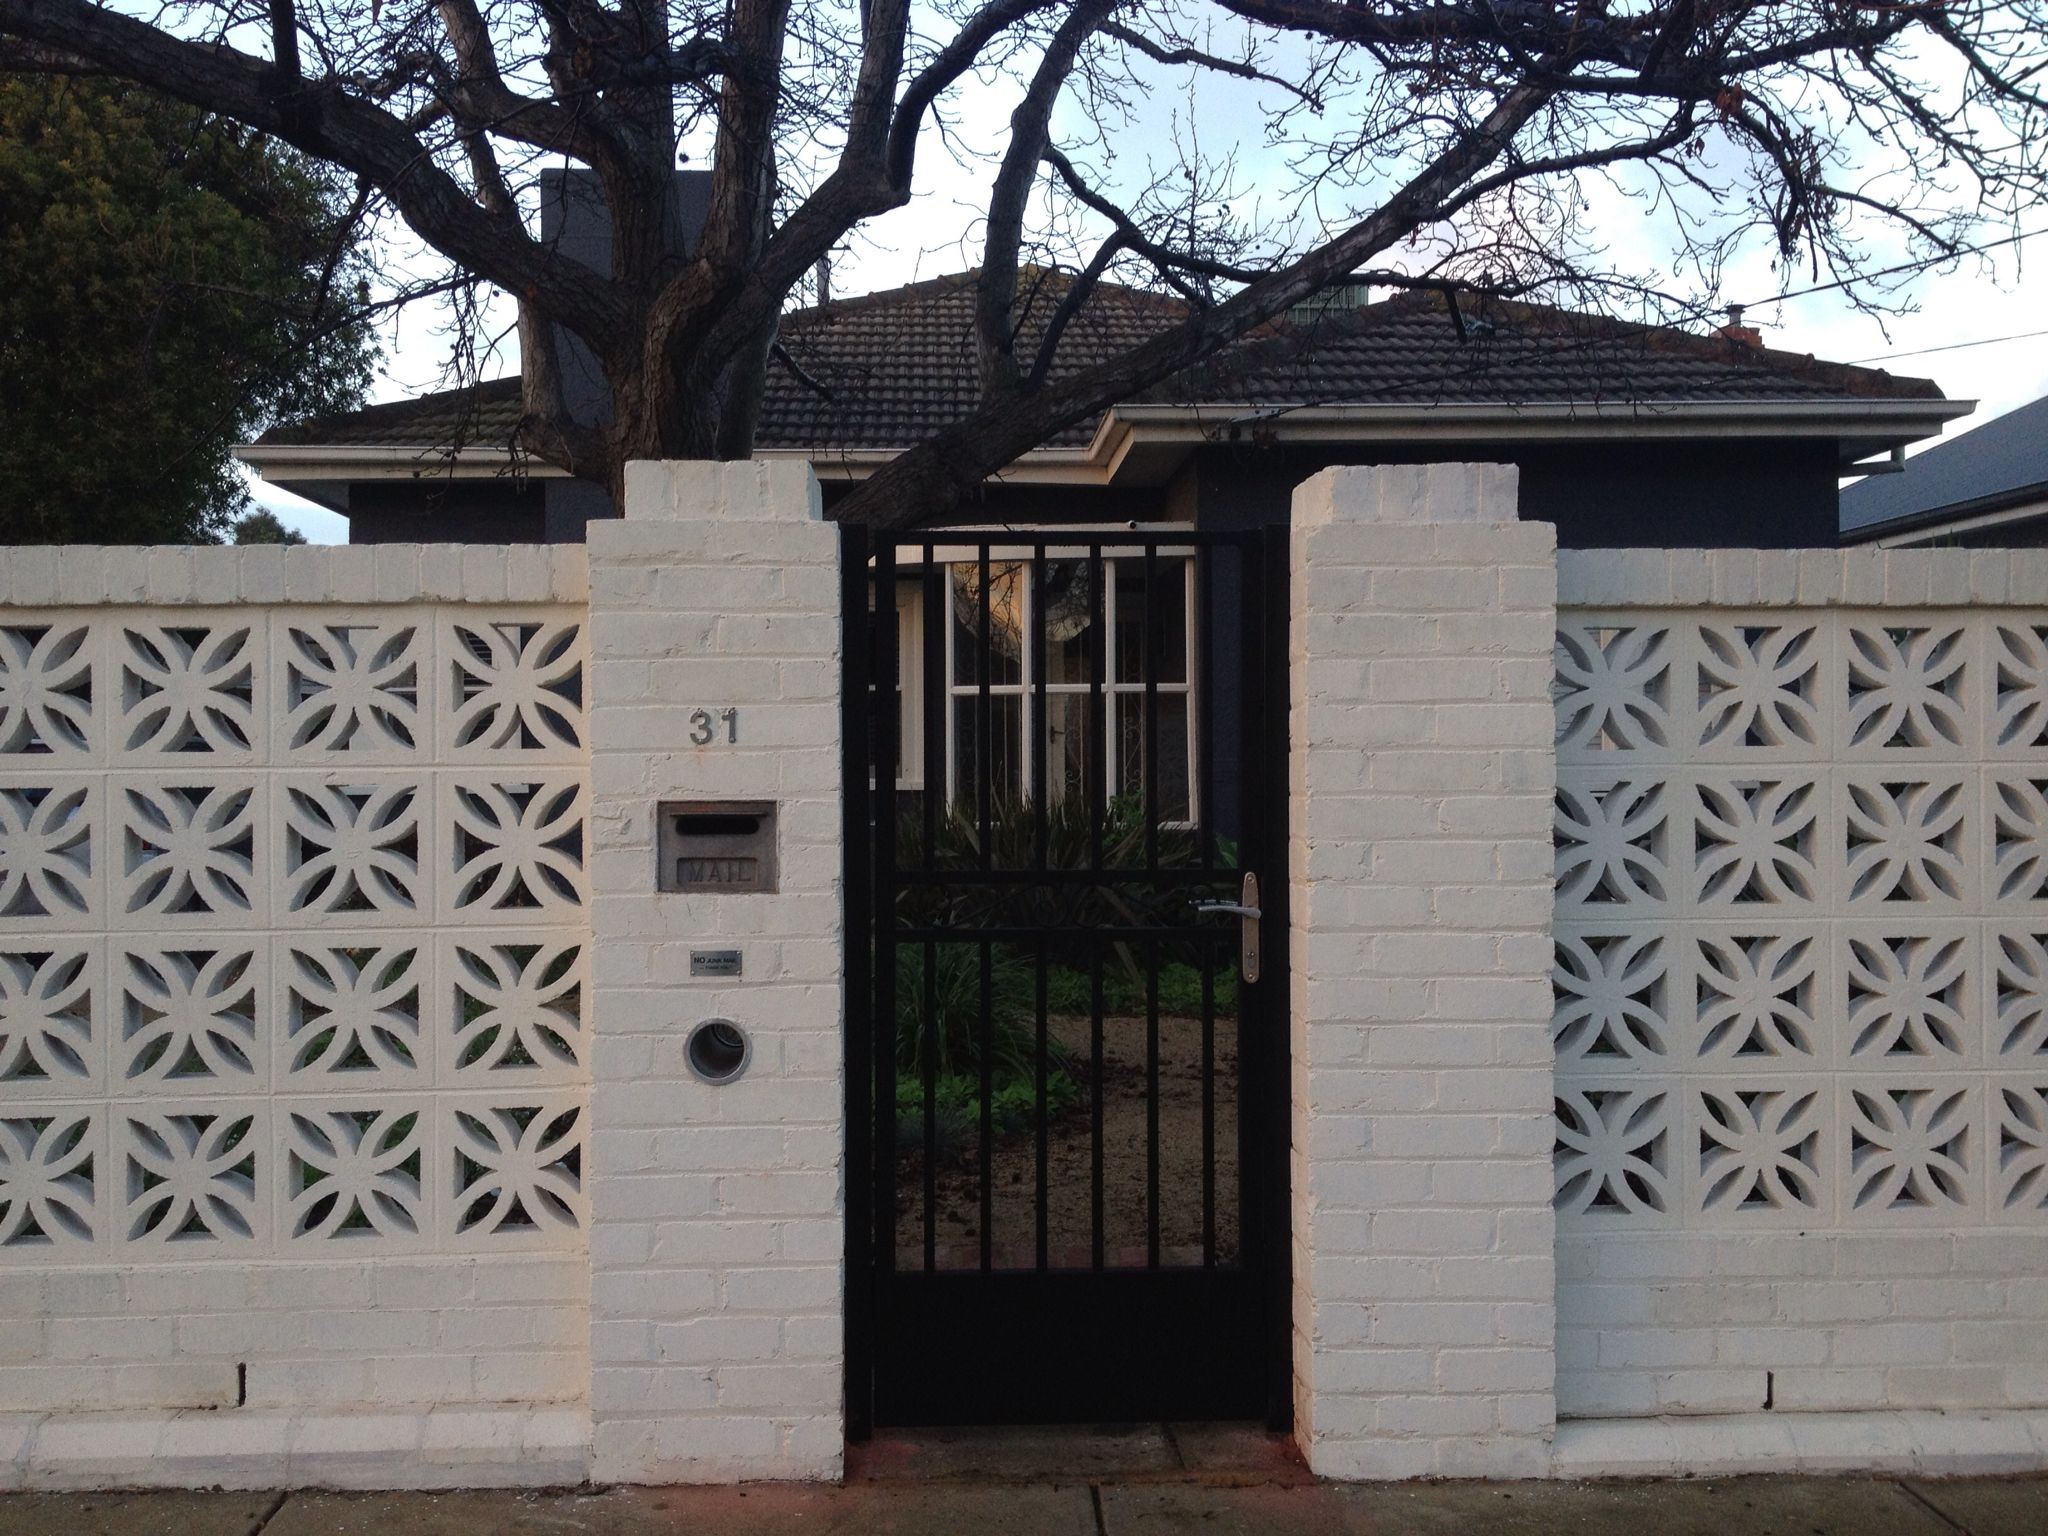 New Front Fence Repurposed From Old Red Bricks And 60S